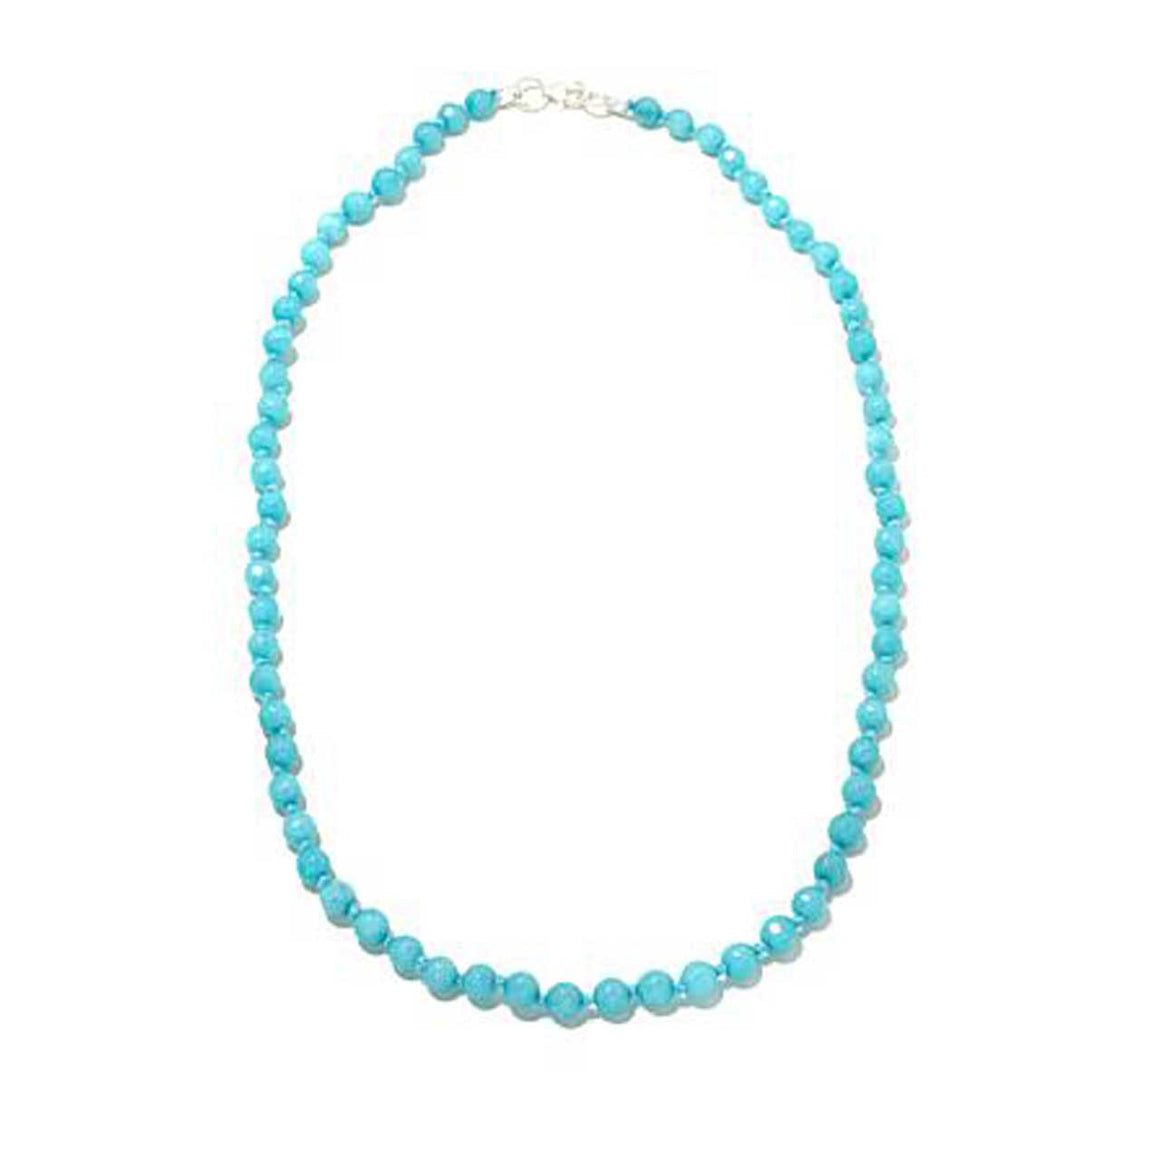 Turquoise Colored Quartz Gemstone Beaded Necklace 20""